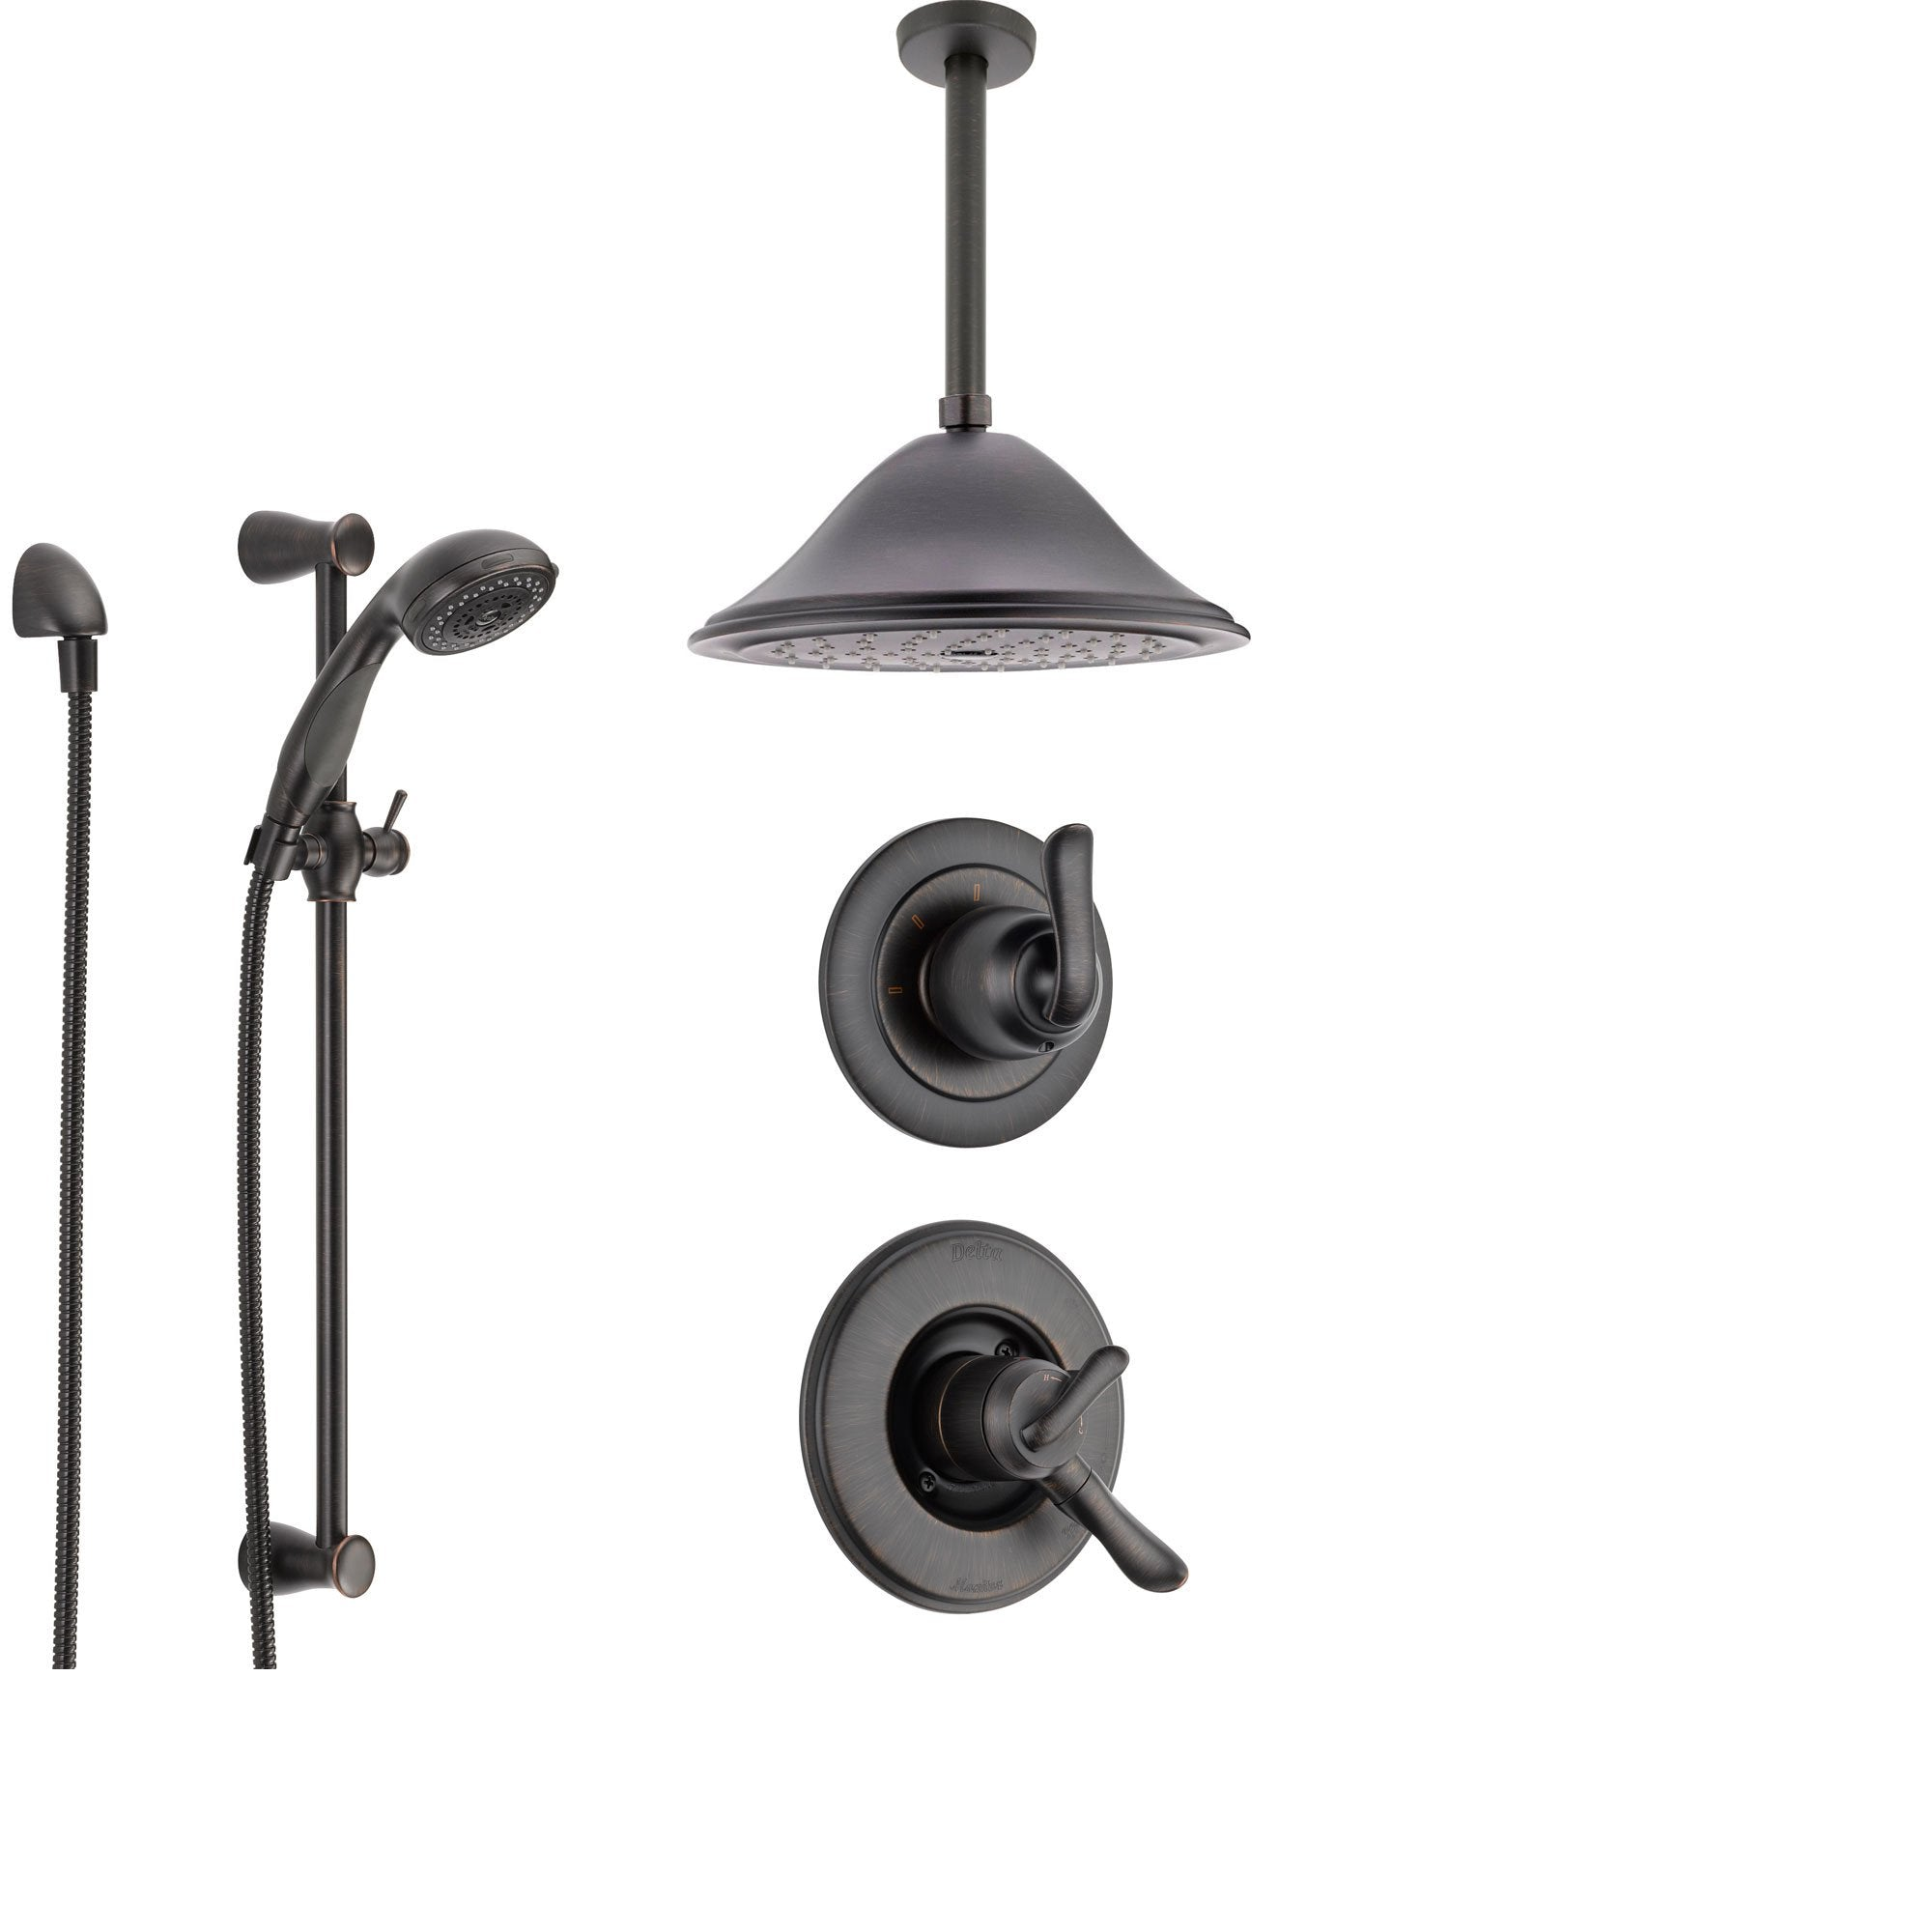 Delta Linden Venetian Bronze Shower System with Dual Control Shower Handle, 3-setting Diverter, Large Ceiling Mount Rain Showerhead, and Handheld Shower SS179482RB